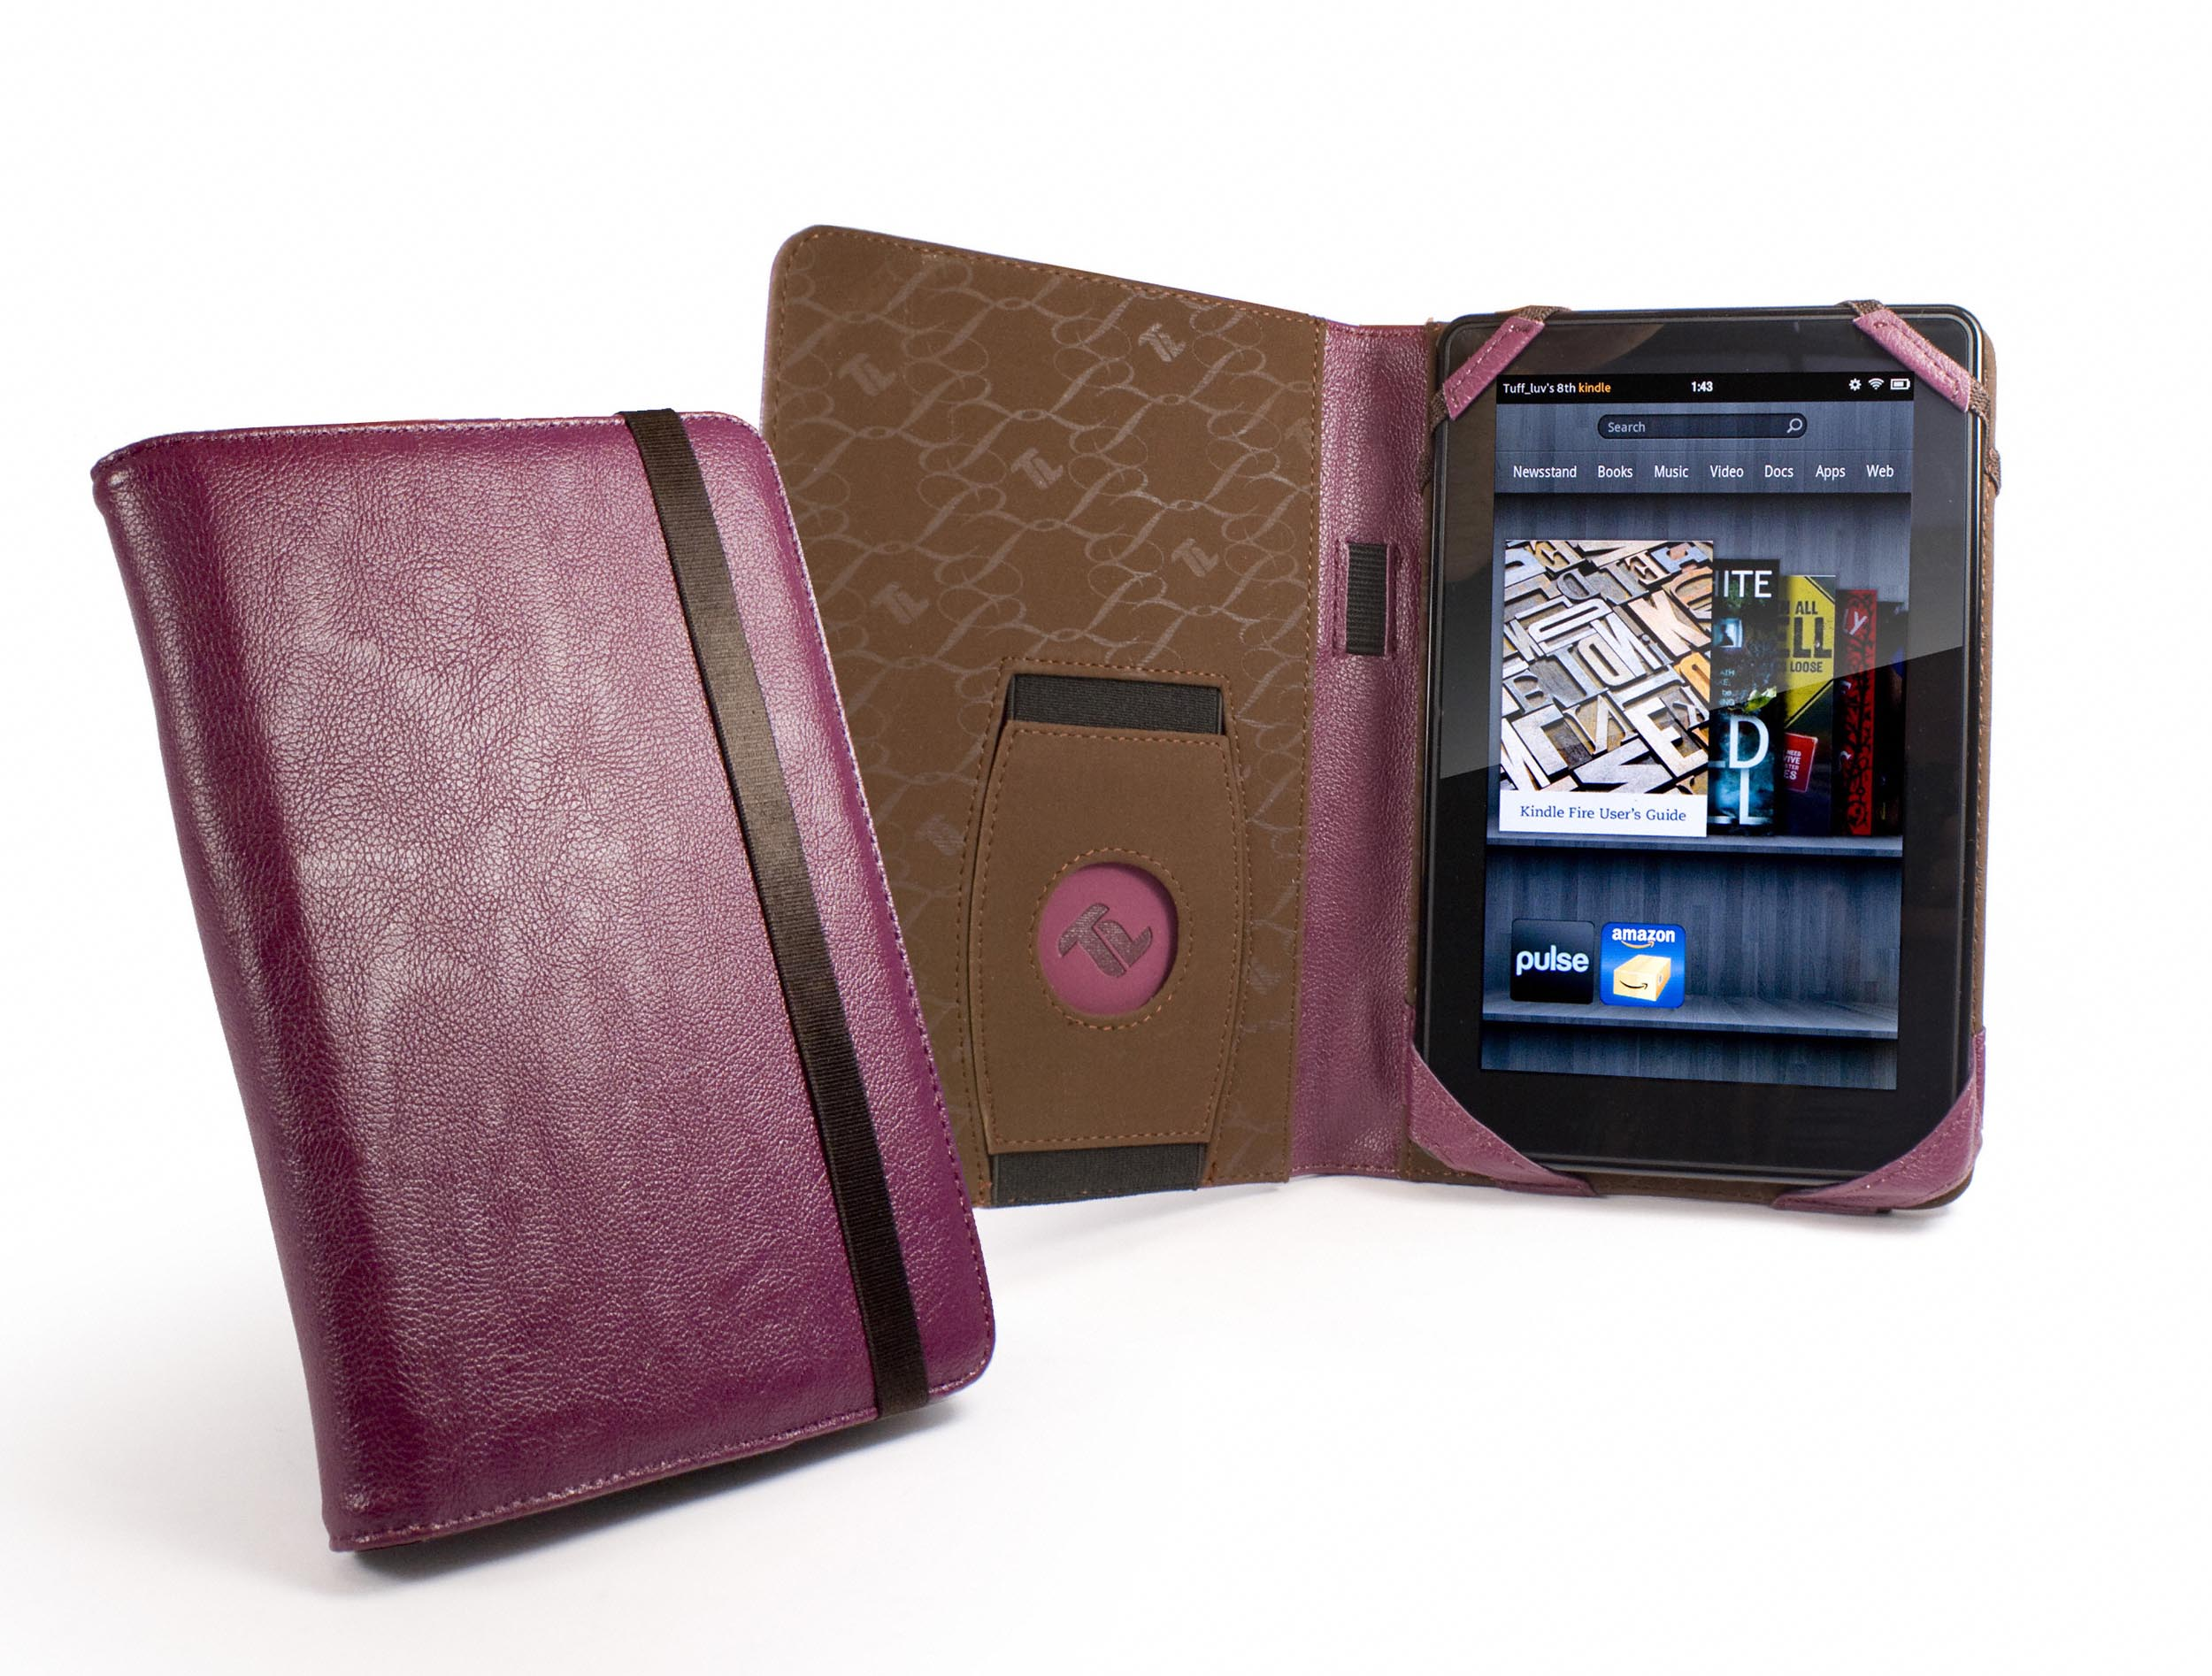 Kindle 2 Case: Tuff LUV Embrace Faux Leather Case Cover FOR Kindle Fire 7